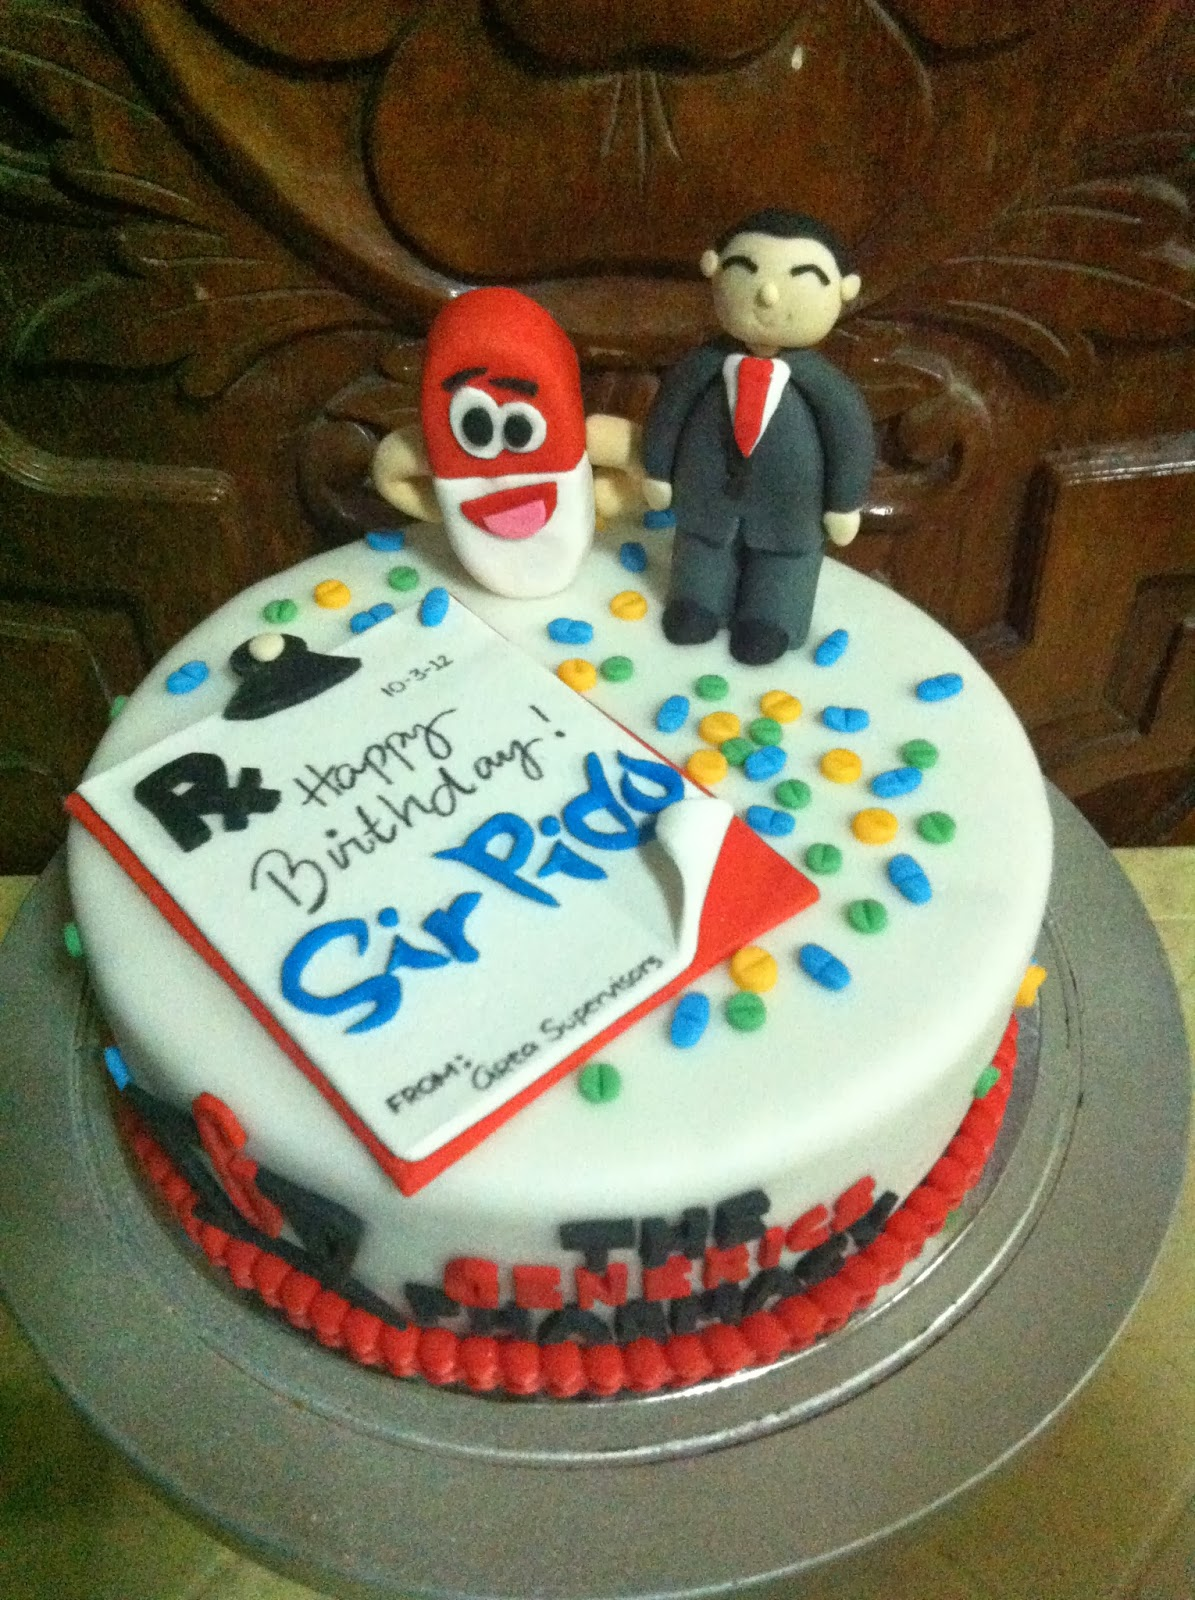 Generics Pharmacy Themed Birthday Cake